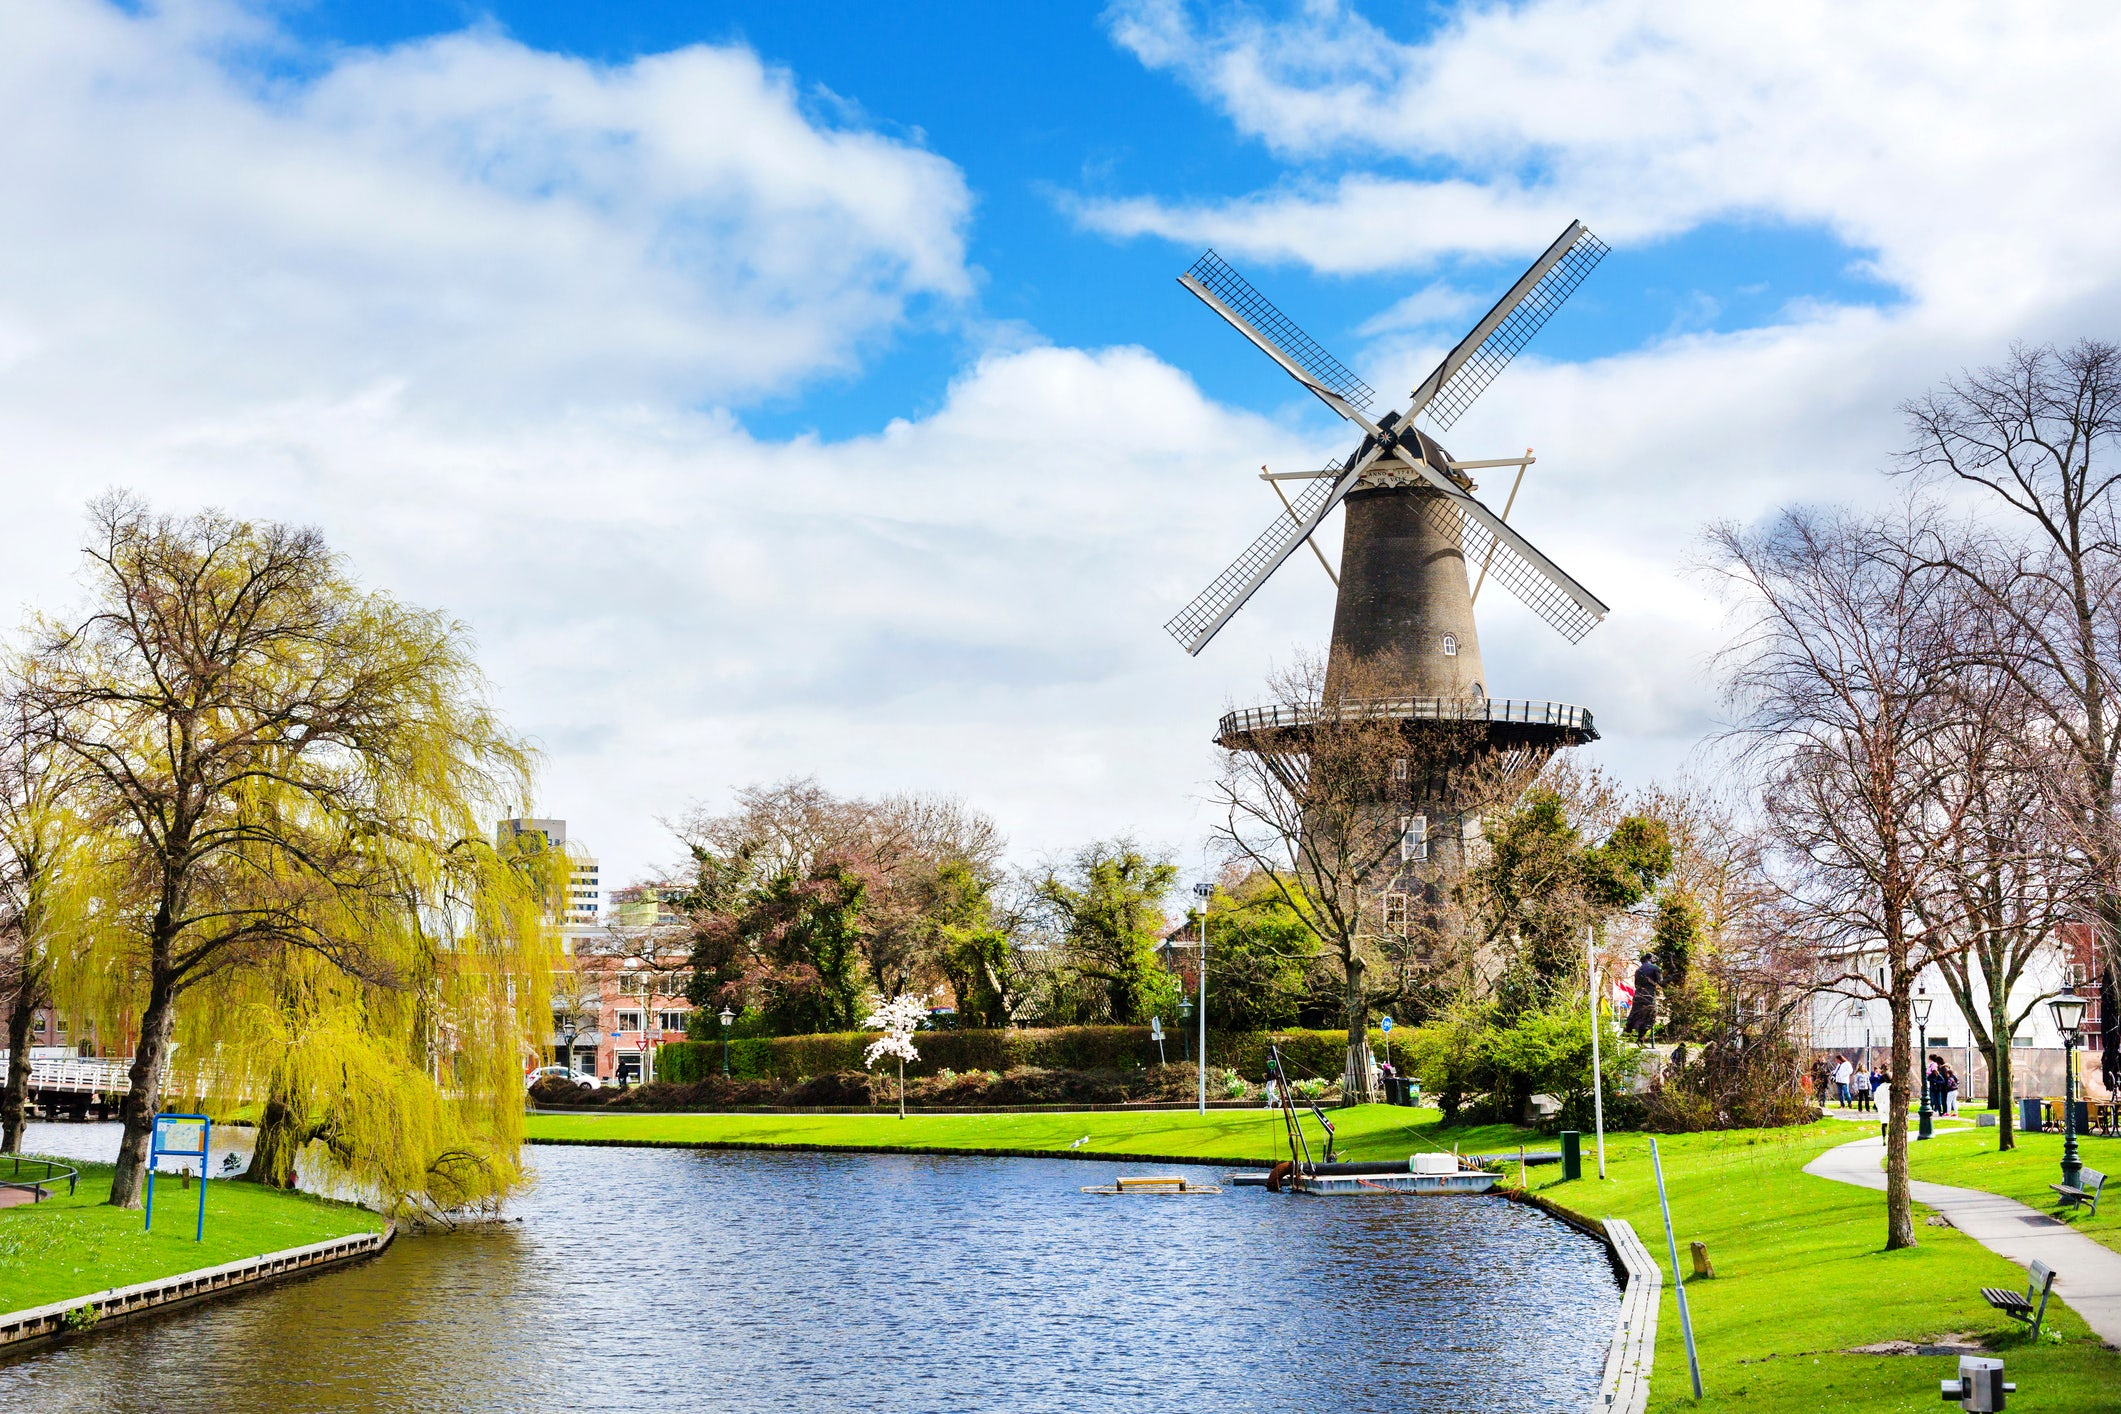 Roadtrip to Delft and Leiden, the Netherlands